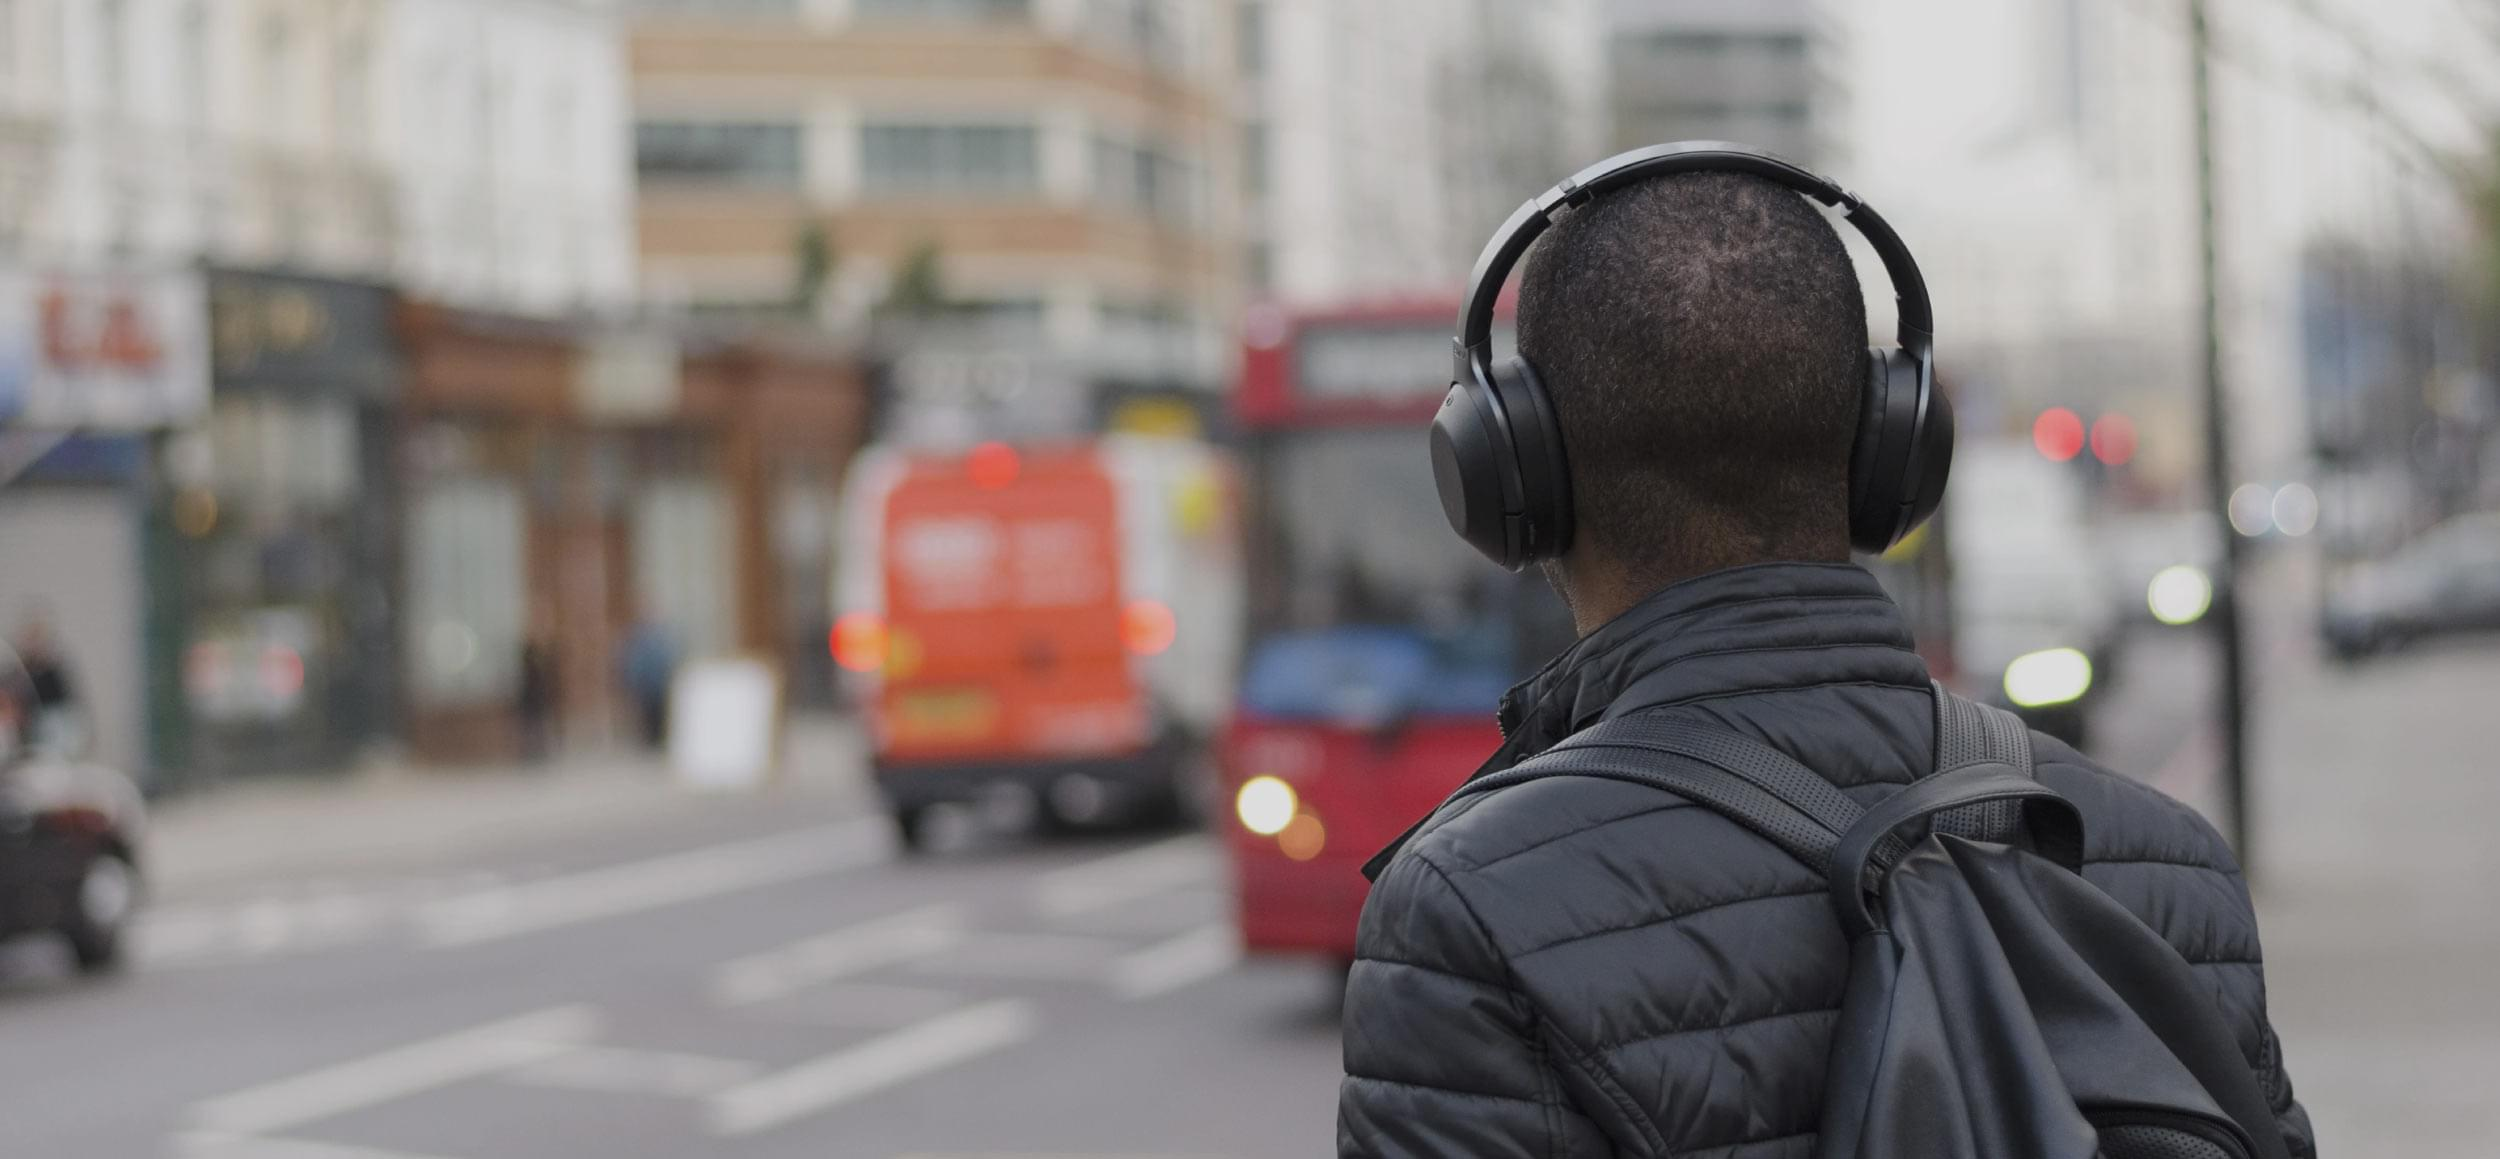 Man wearing headphones looking out on to the street